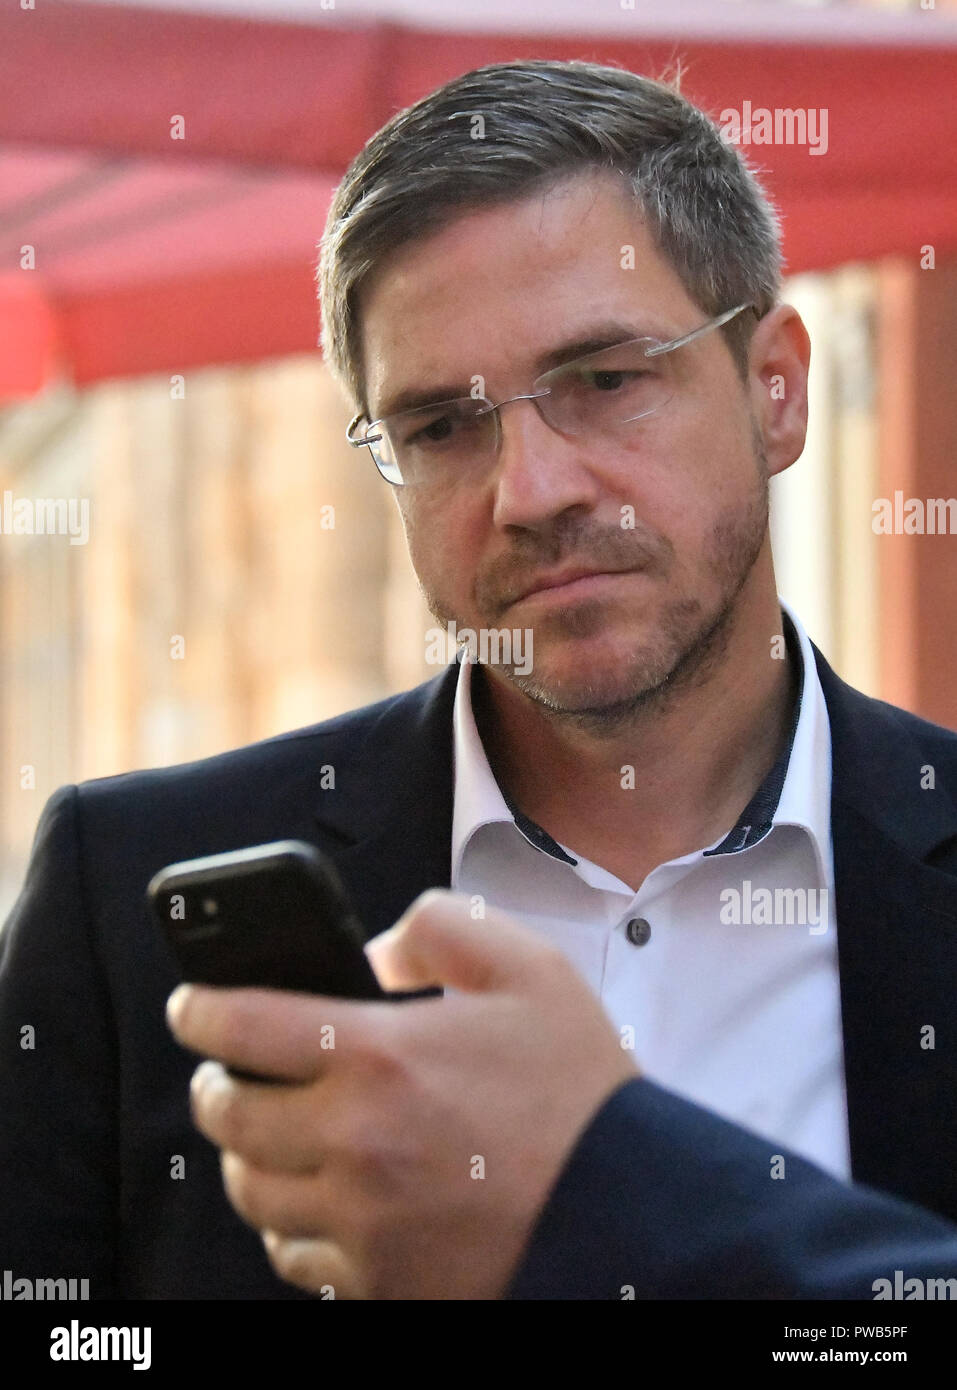 Potsdam, Brandenburg. 14th Oct, 2018. 14 October 2018, Germany, Potsdam: Mayor candidate Mike Schubert (SPD) looks at a mobile phone with the first results of the vote count. Credit: Bernd Settnik/dpa-Zen tralbild/dpa/Alamy Live News - Stock Image